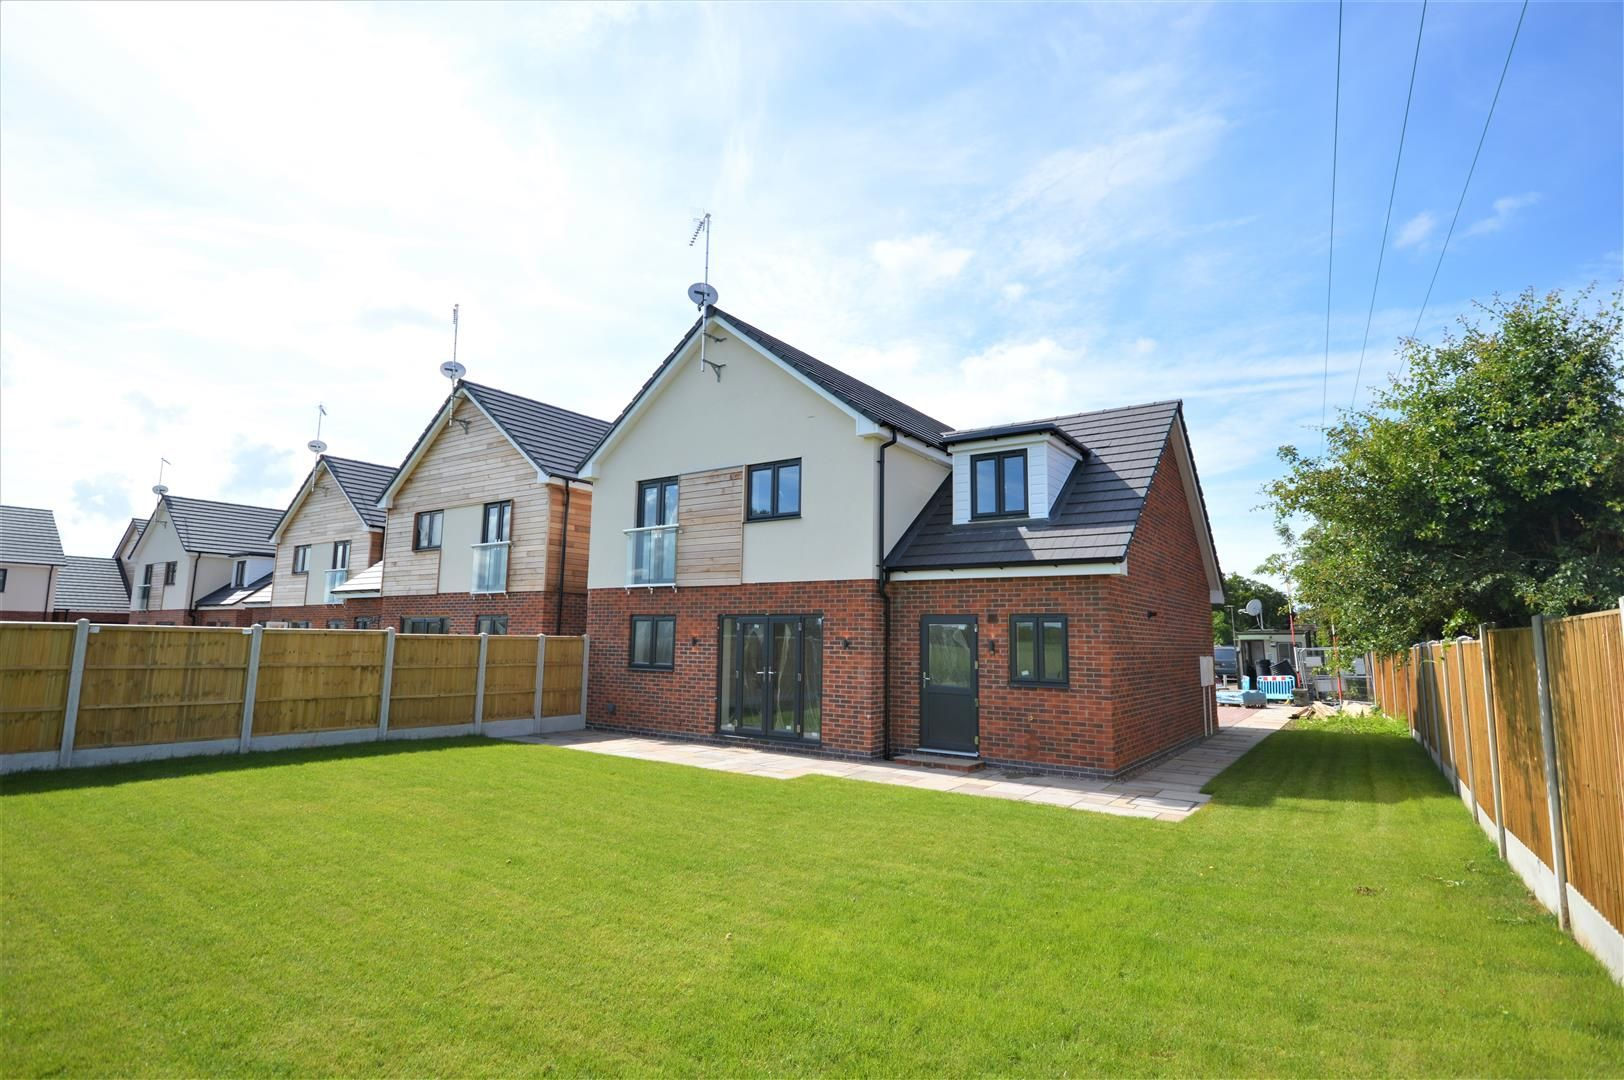 4 bed detached for sale in Kingsland 10